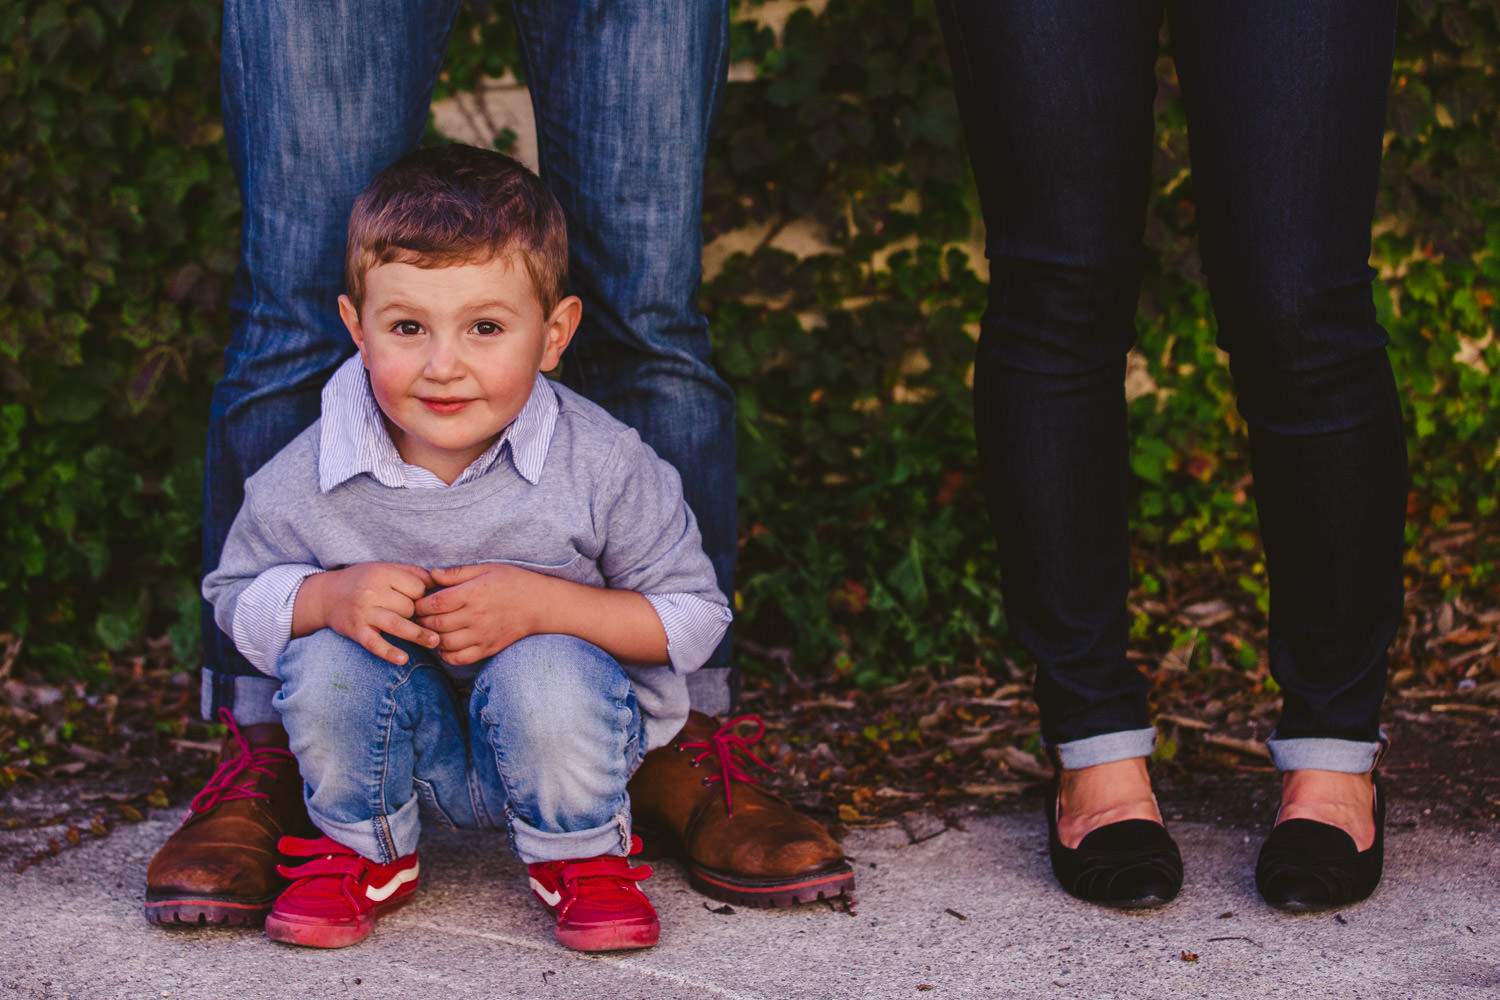 Little boy crouching between parents legs and feet